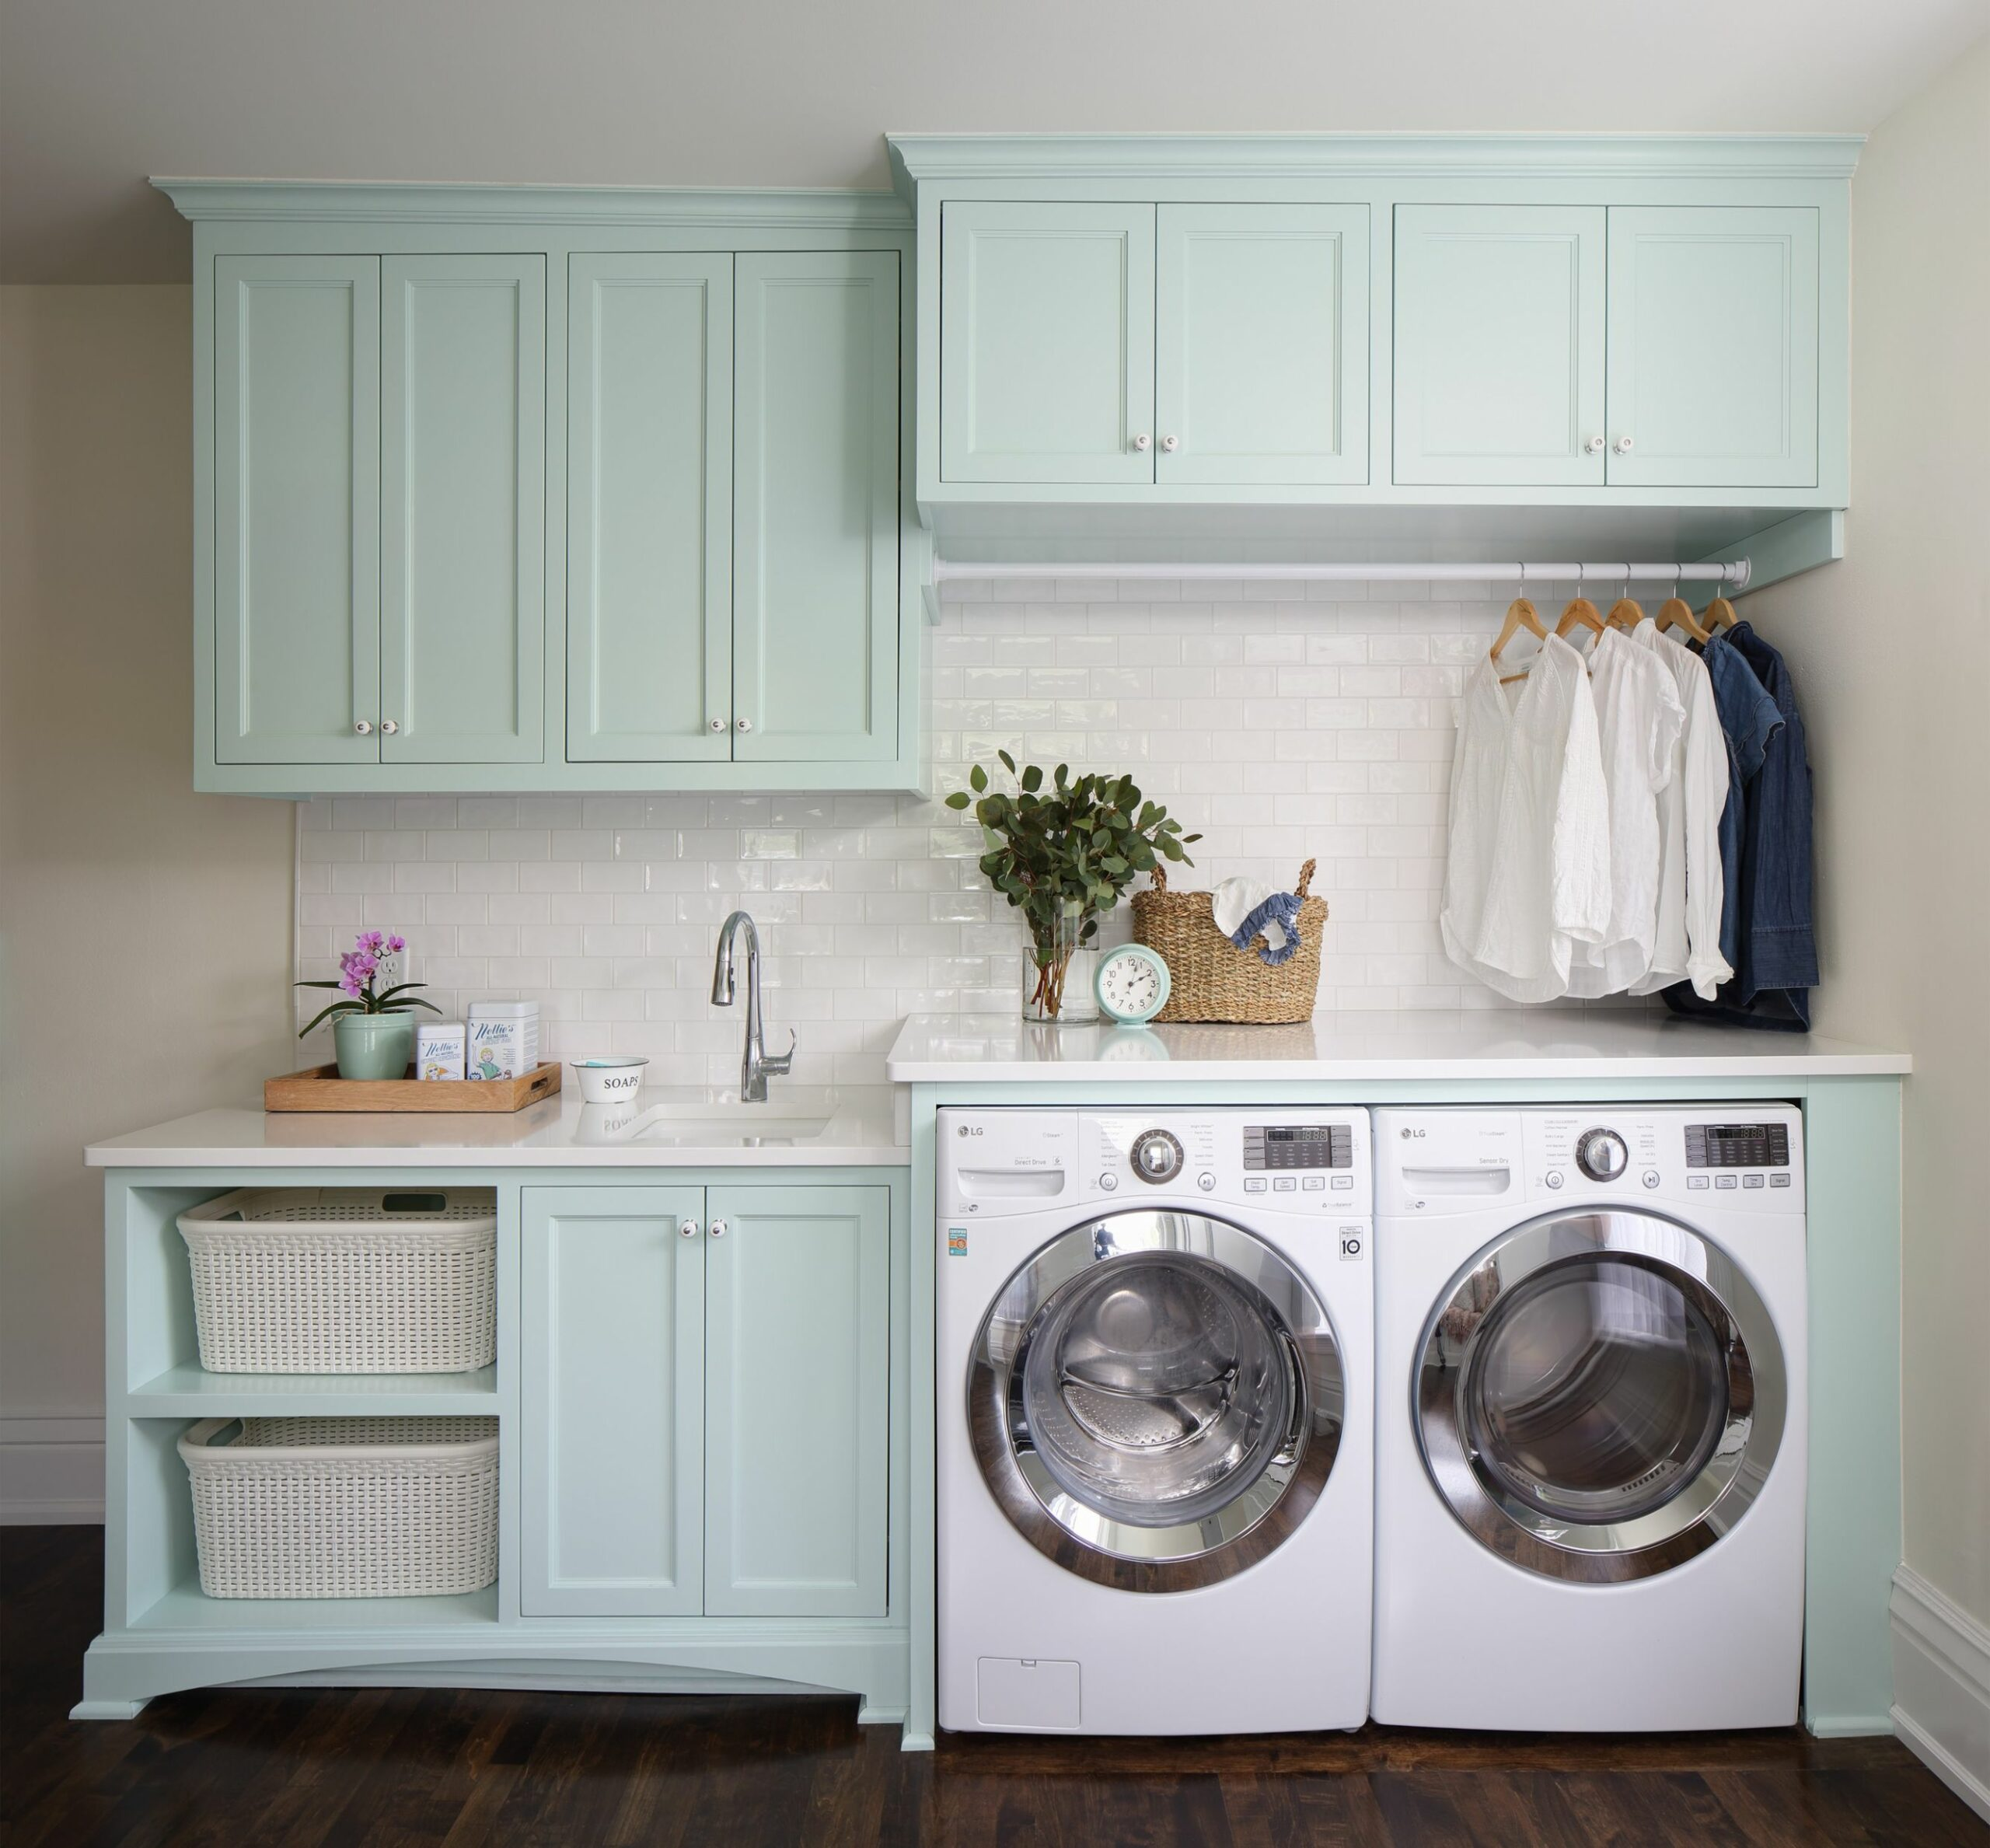 10 Beautiful Laundry Room Pictures & Ideas | Houzz - neat laundry room ideas